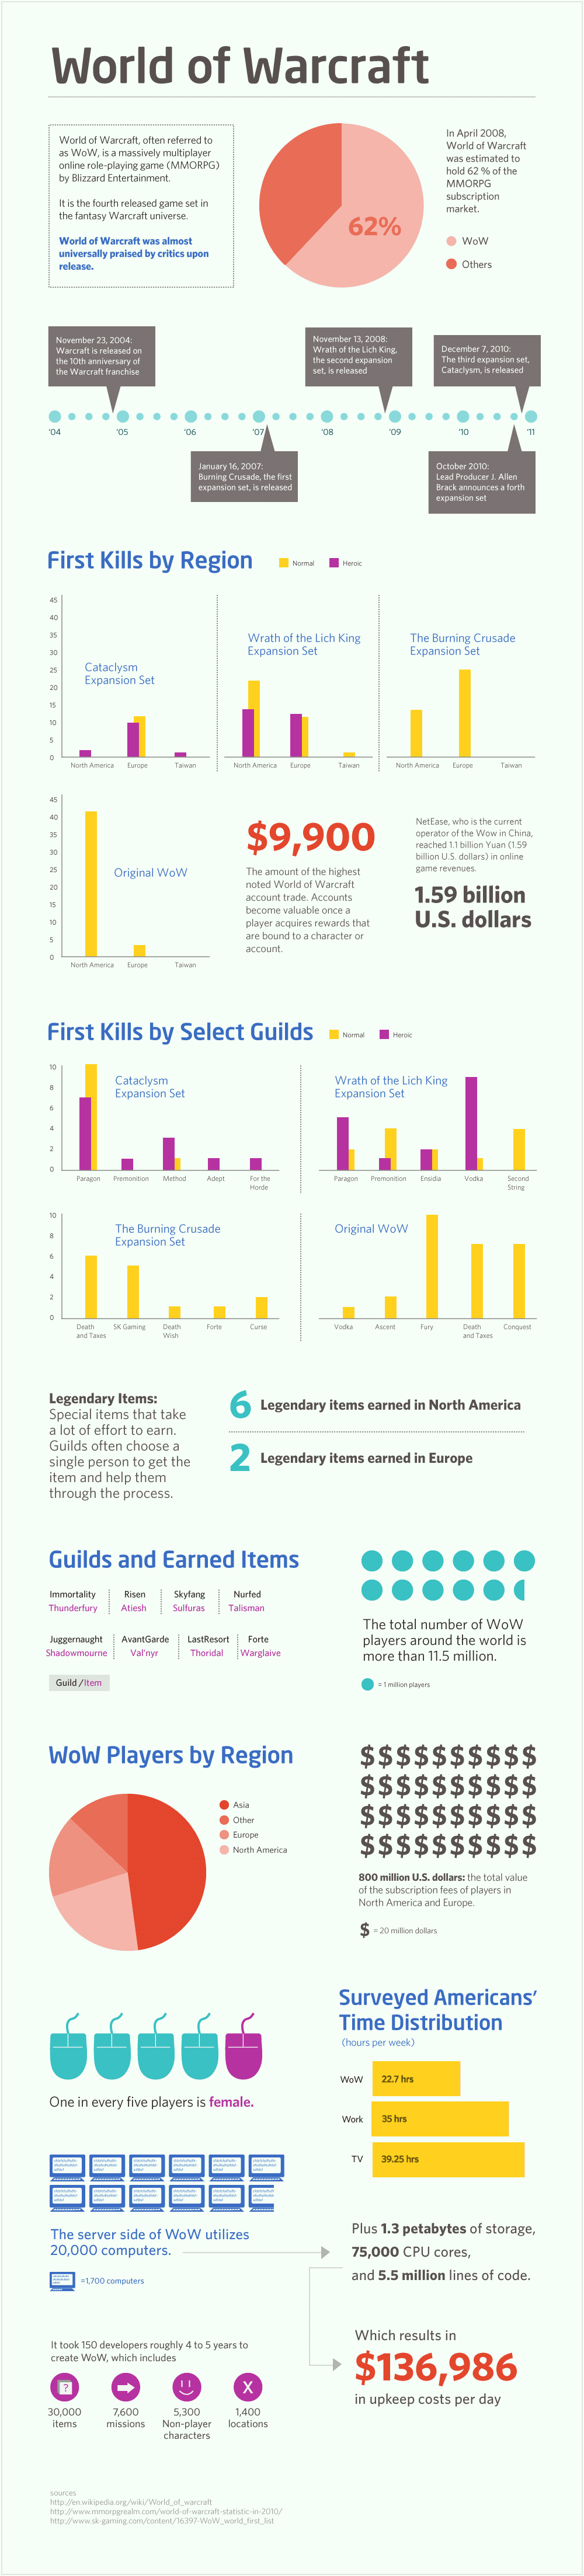 world-of-warcraft-numbers-infographic